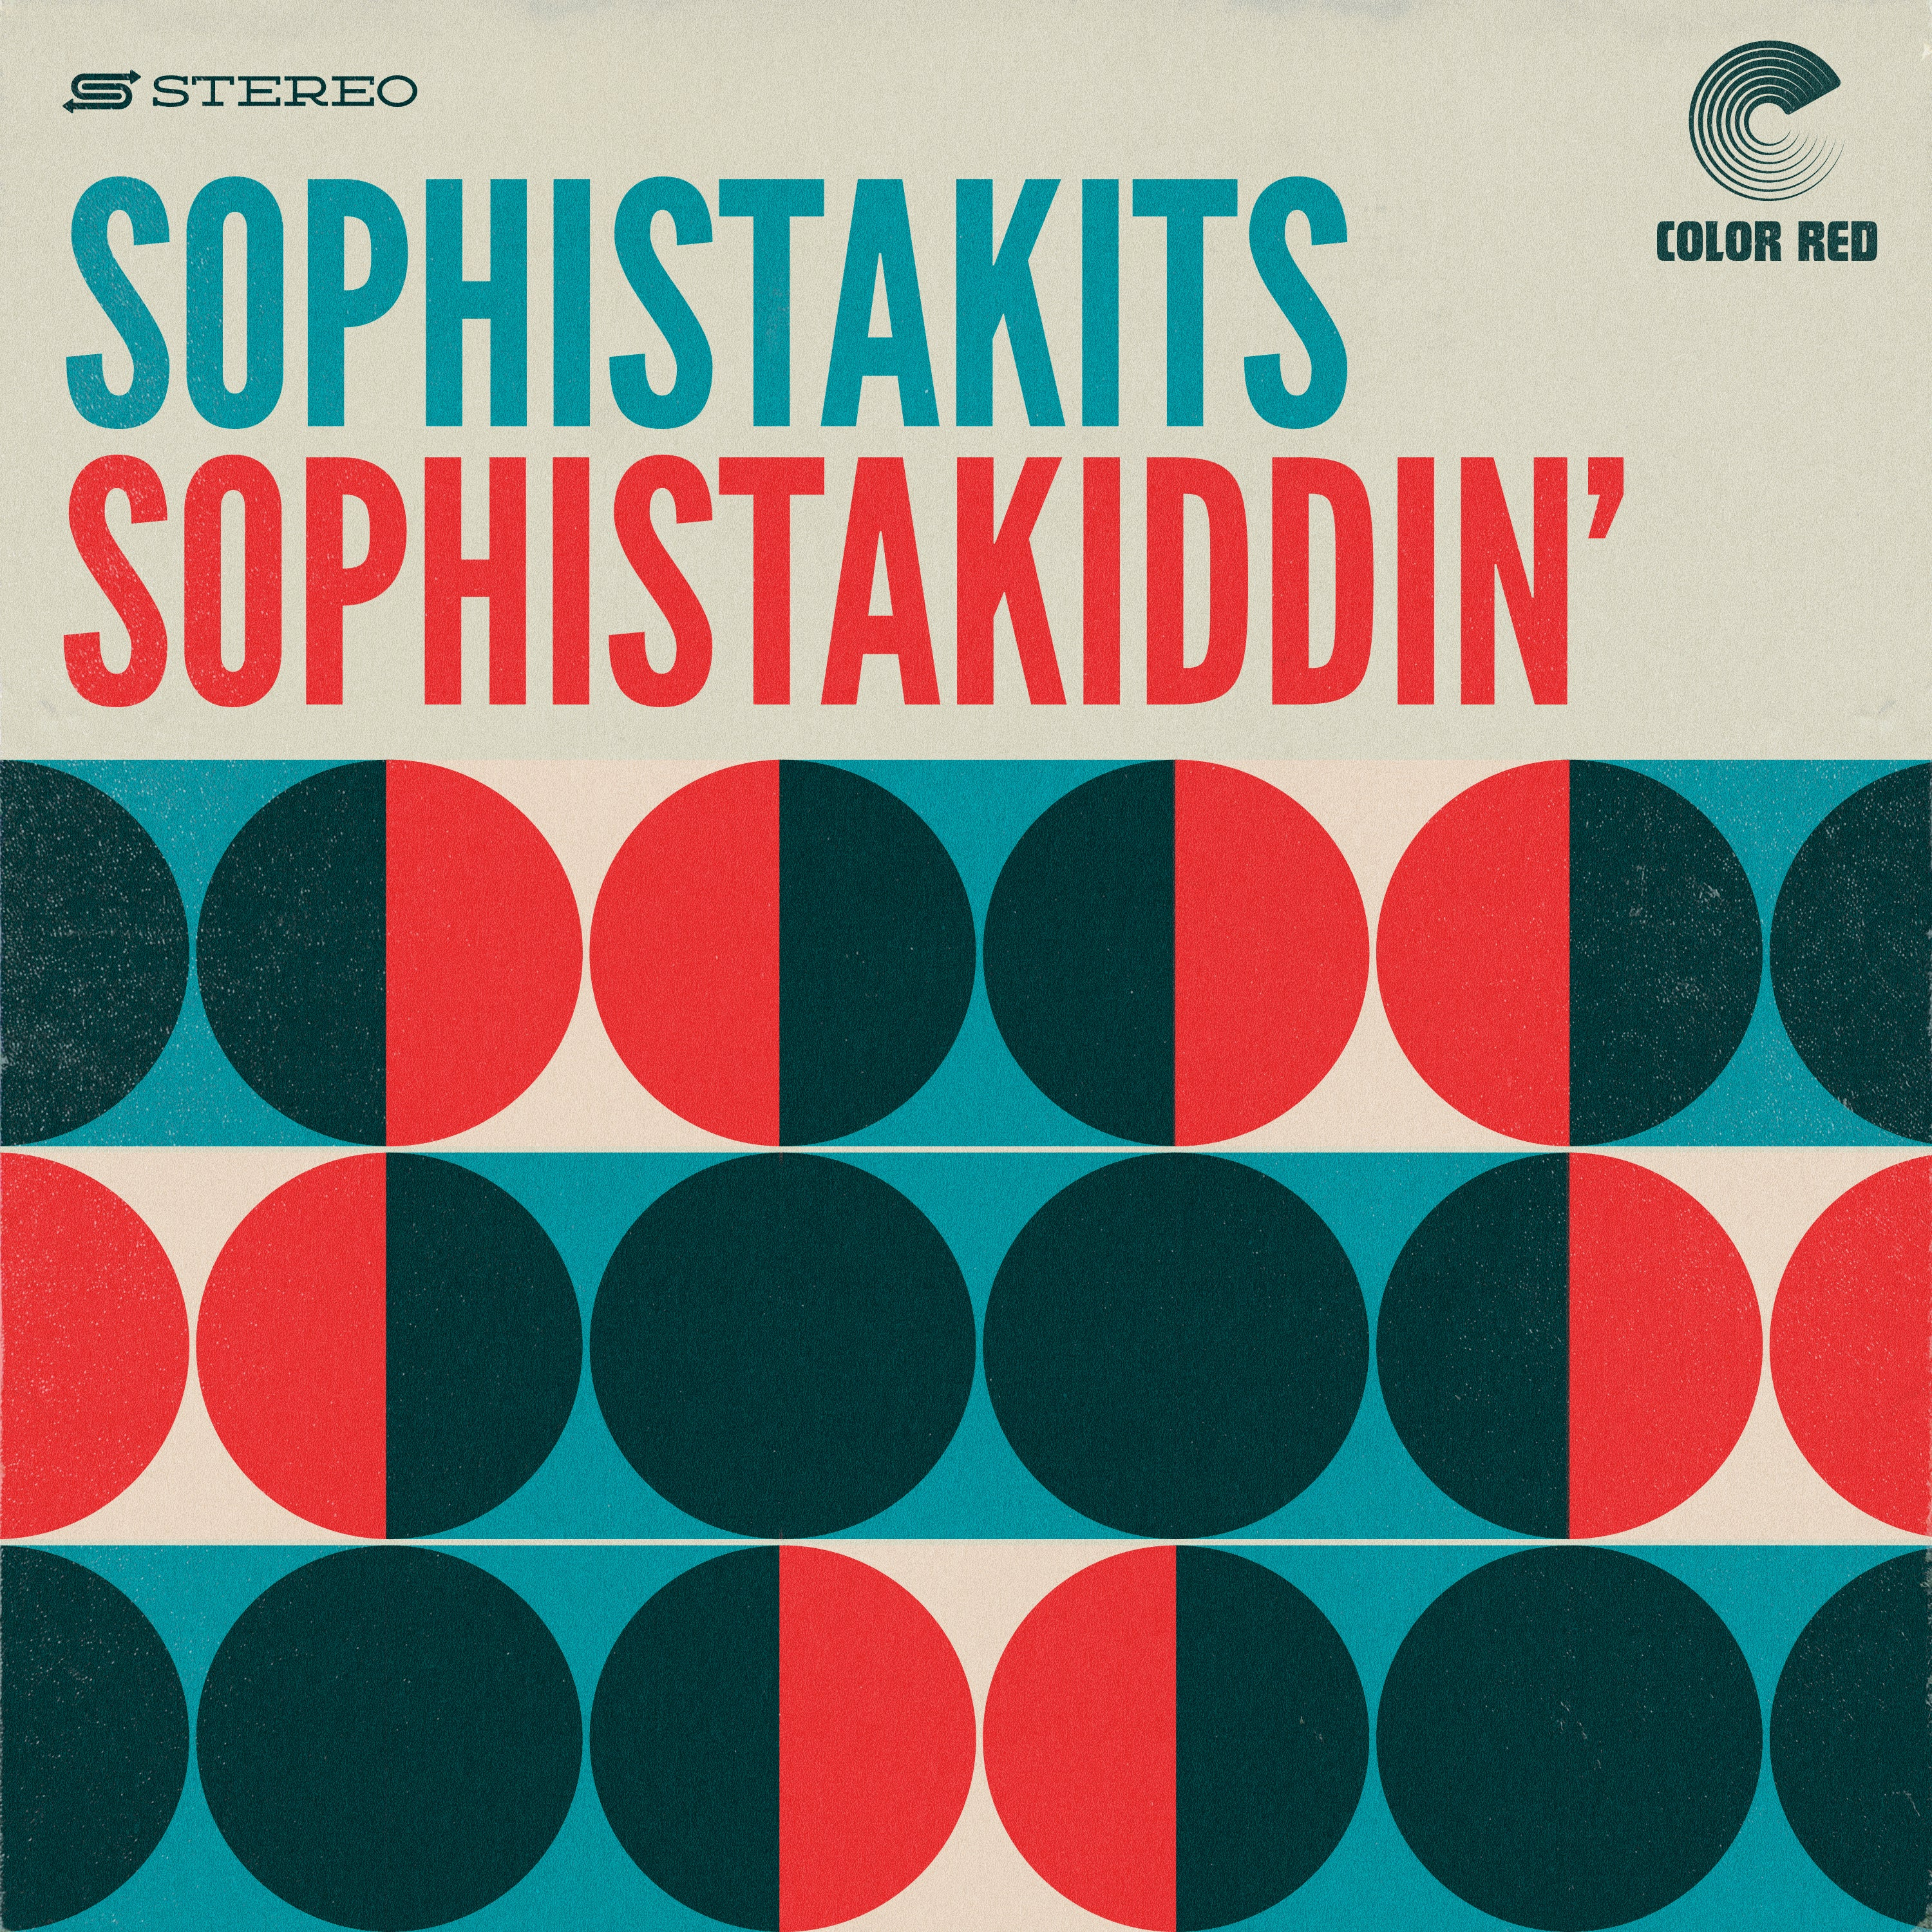 Sophistakits - Sophistakiddin' | Color Red Music